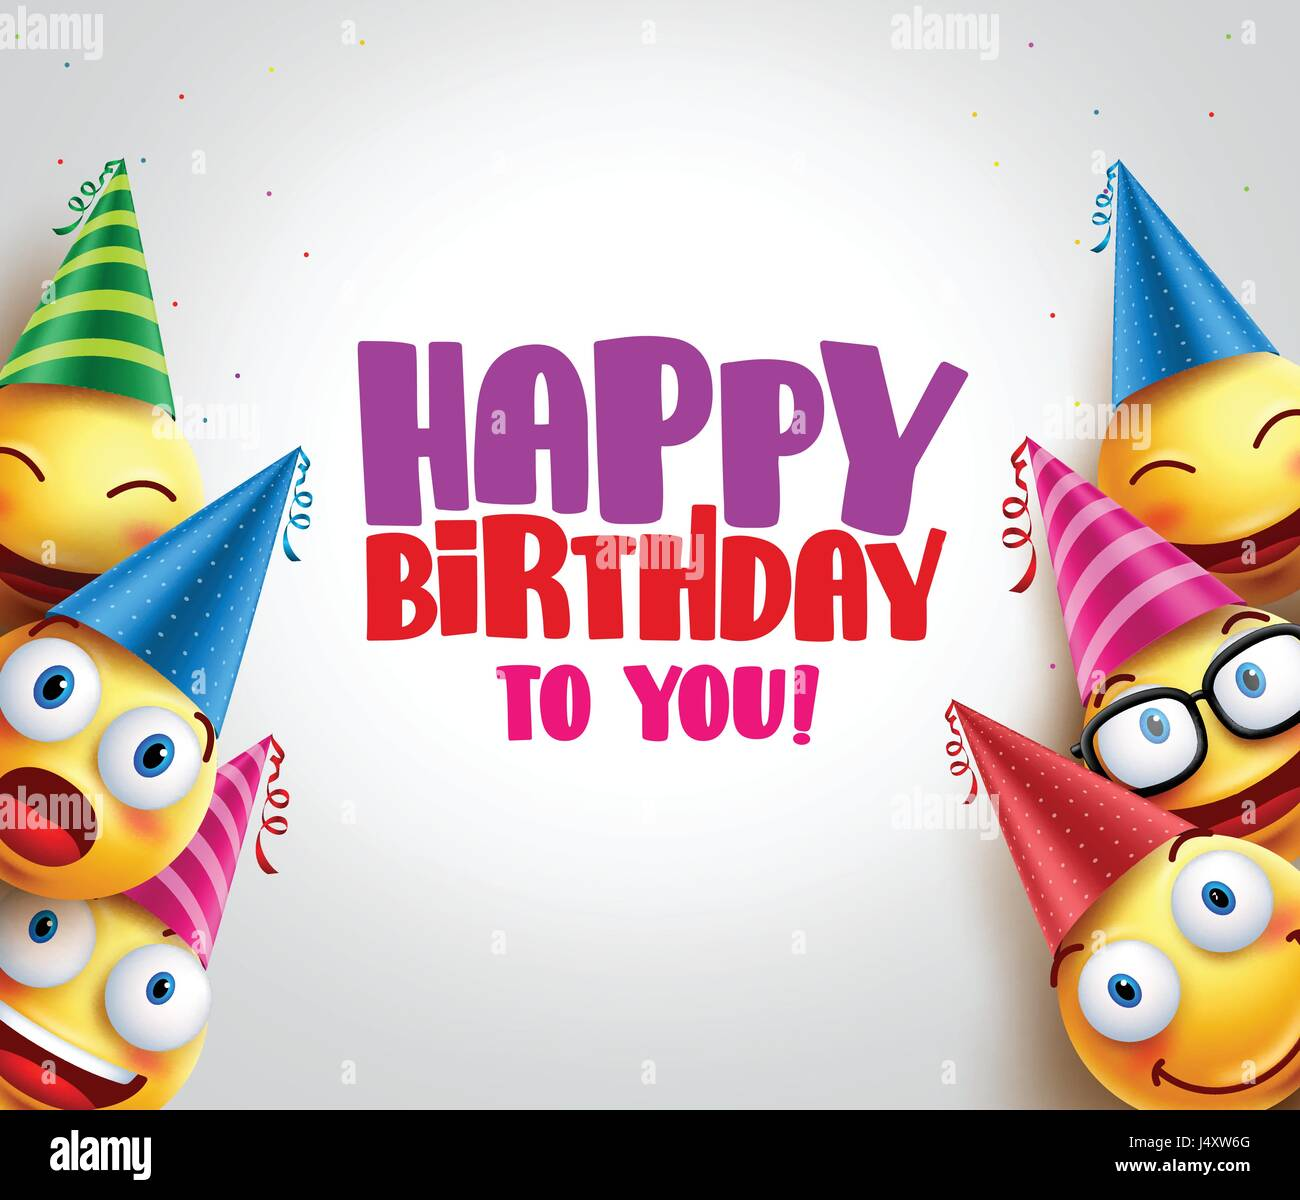 Happy Birthday Greeting With Smileys Vector Background And Funny Wearing Colorful Hats For Party Celebrations